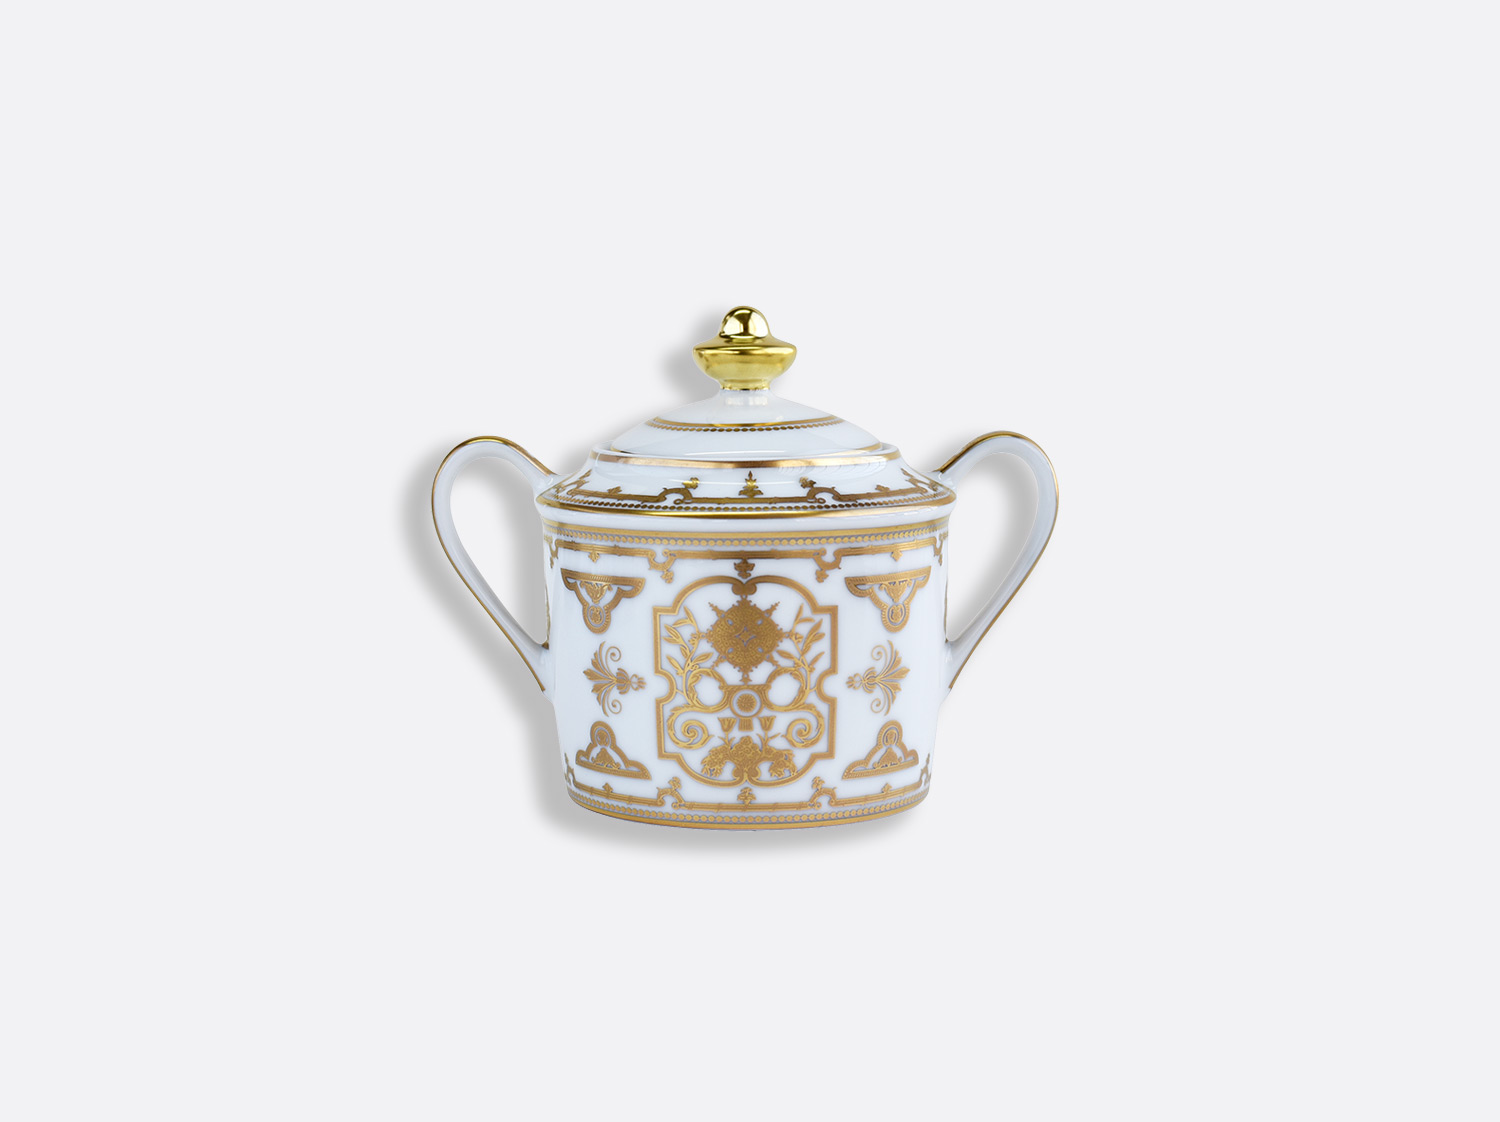 Sucrier 6 tasses 20 cl en porcelaine de la collection Aux Rois Or Bernardaud